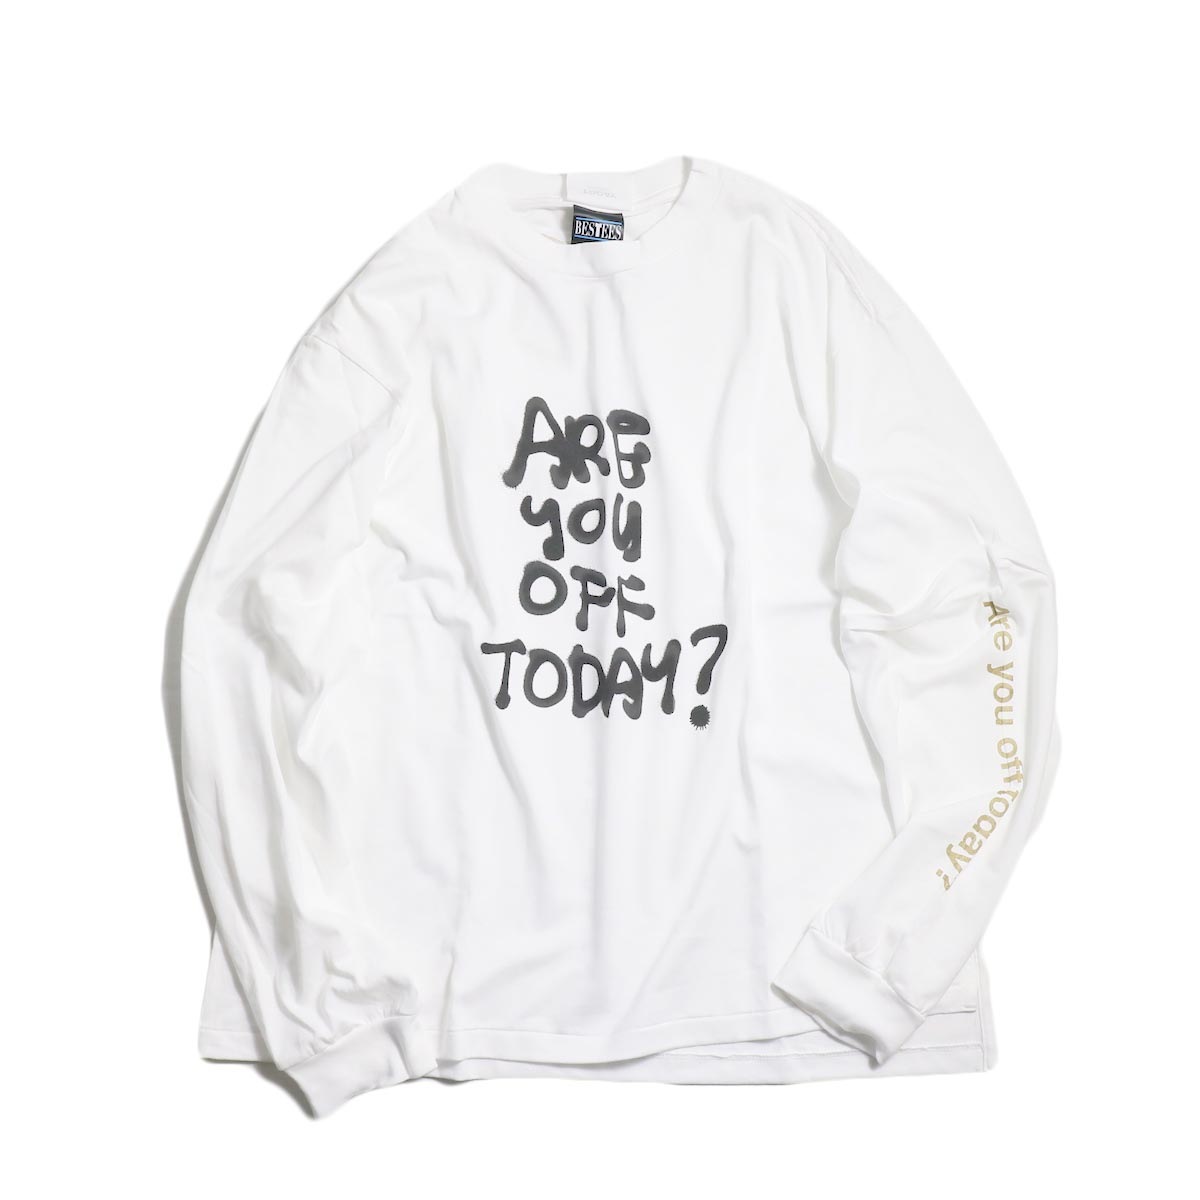 TODAY edition / ARE YOU OFF TODAY? tee -White